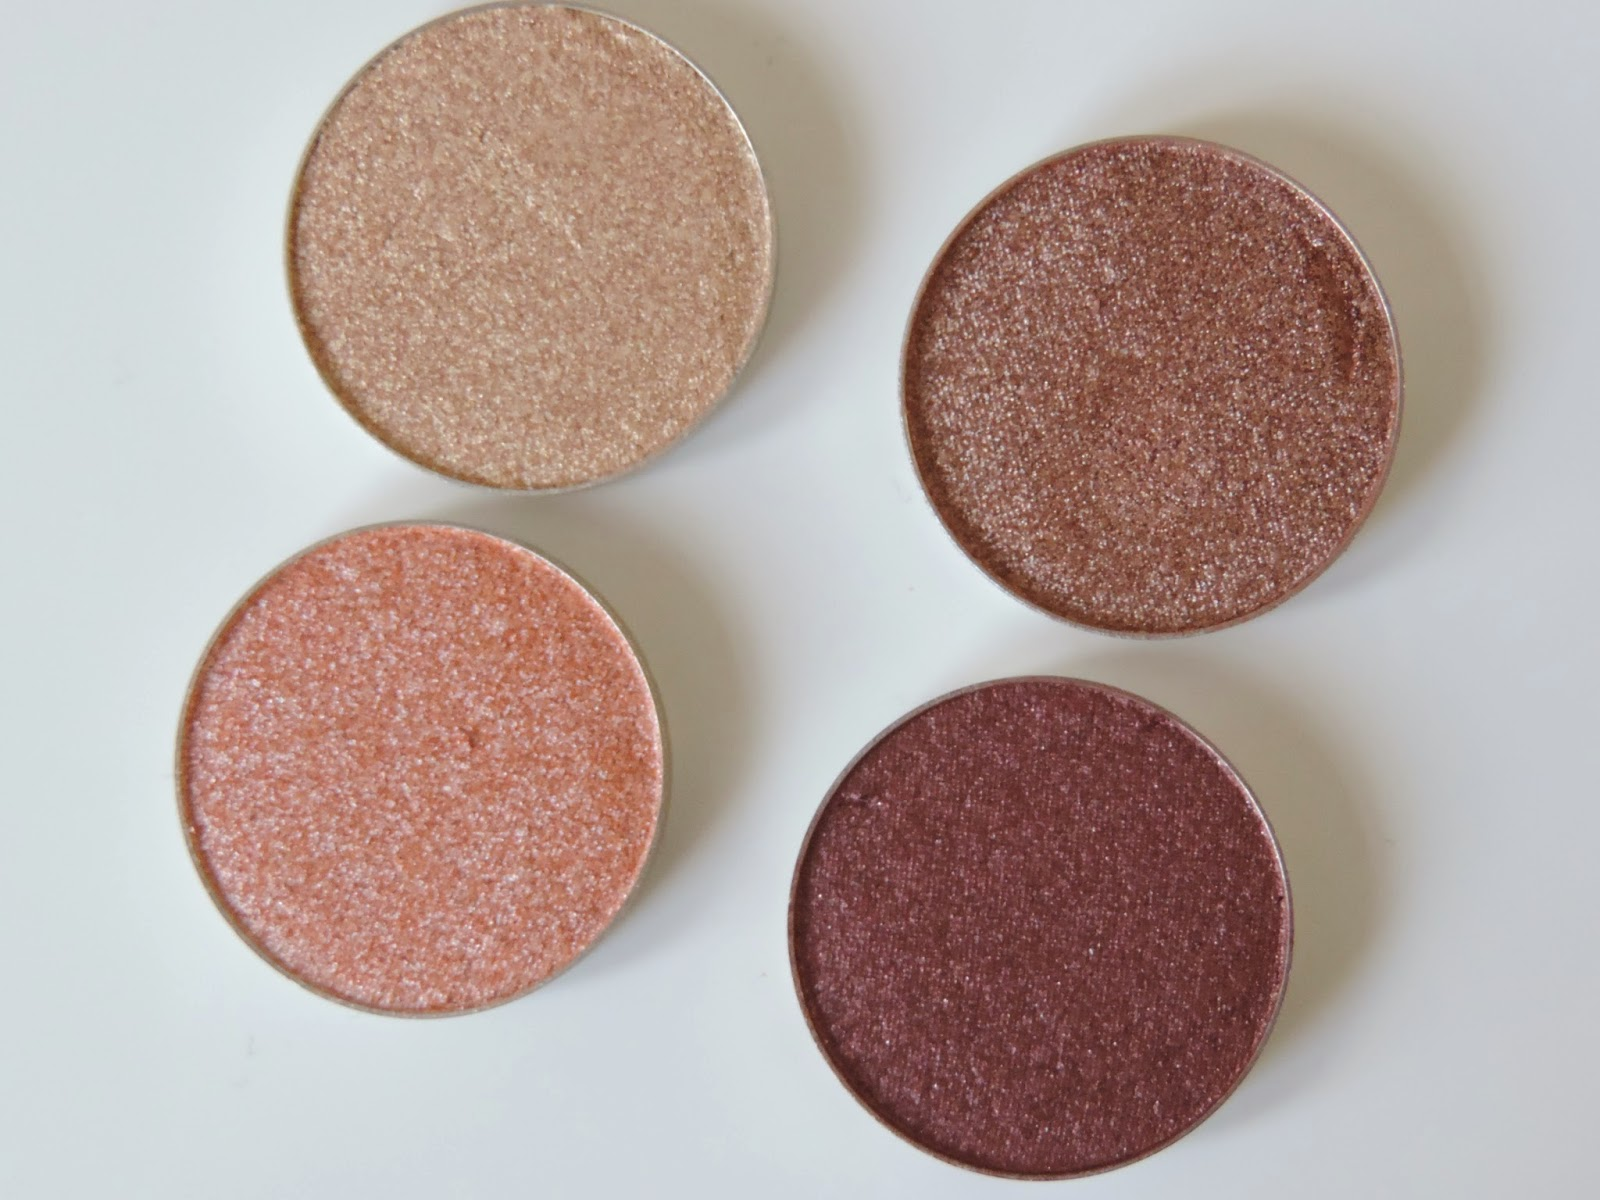 Makeup Geek Foiled Eyeshadows (clockwise) Grandstand, Showtime, In The Spotlight, Magic Act